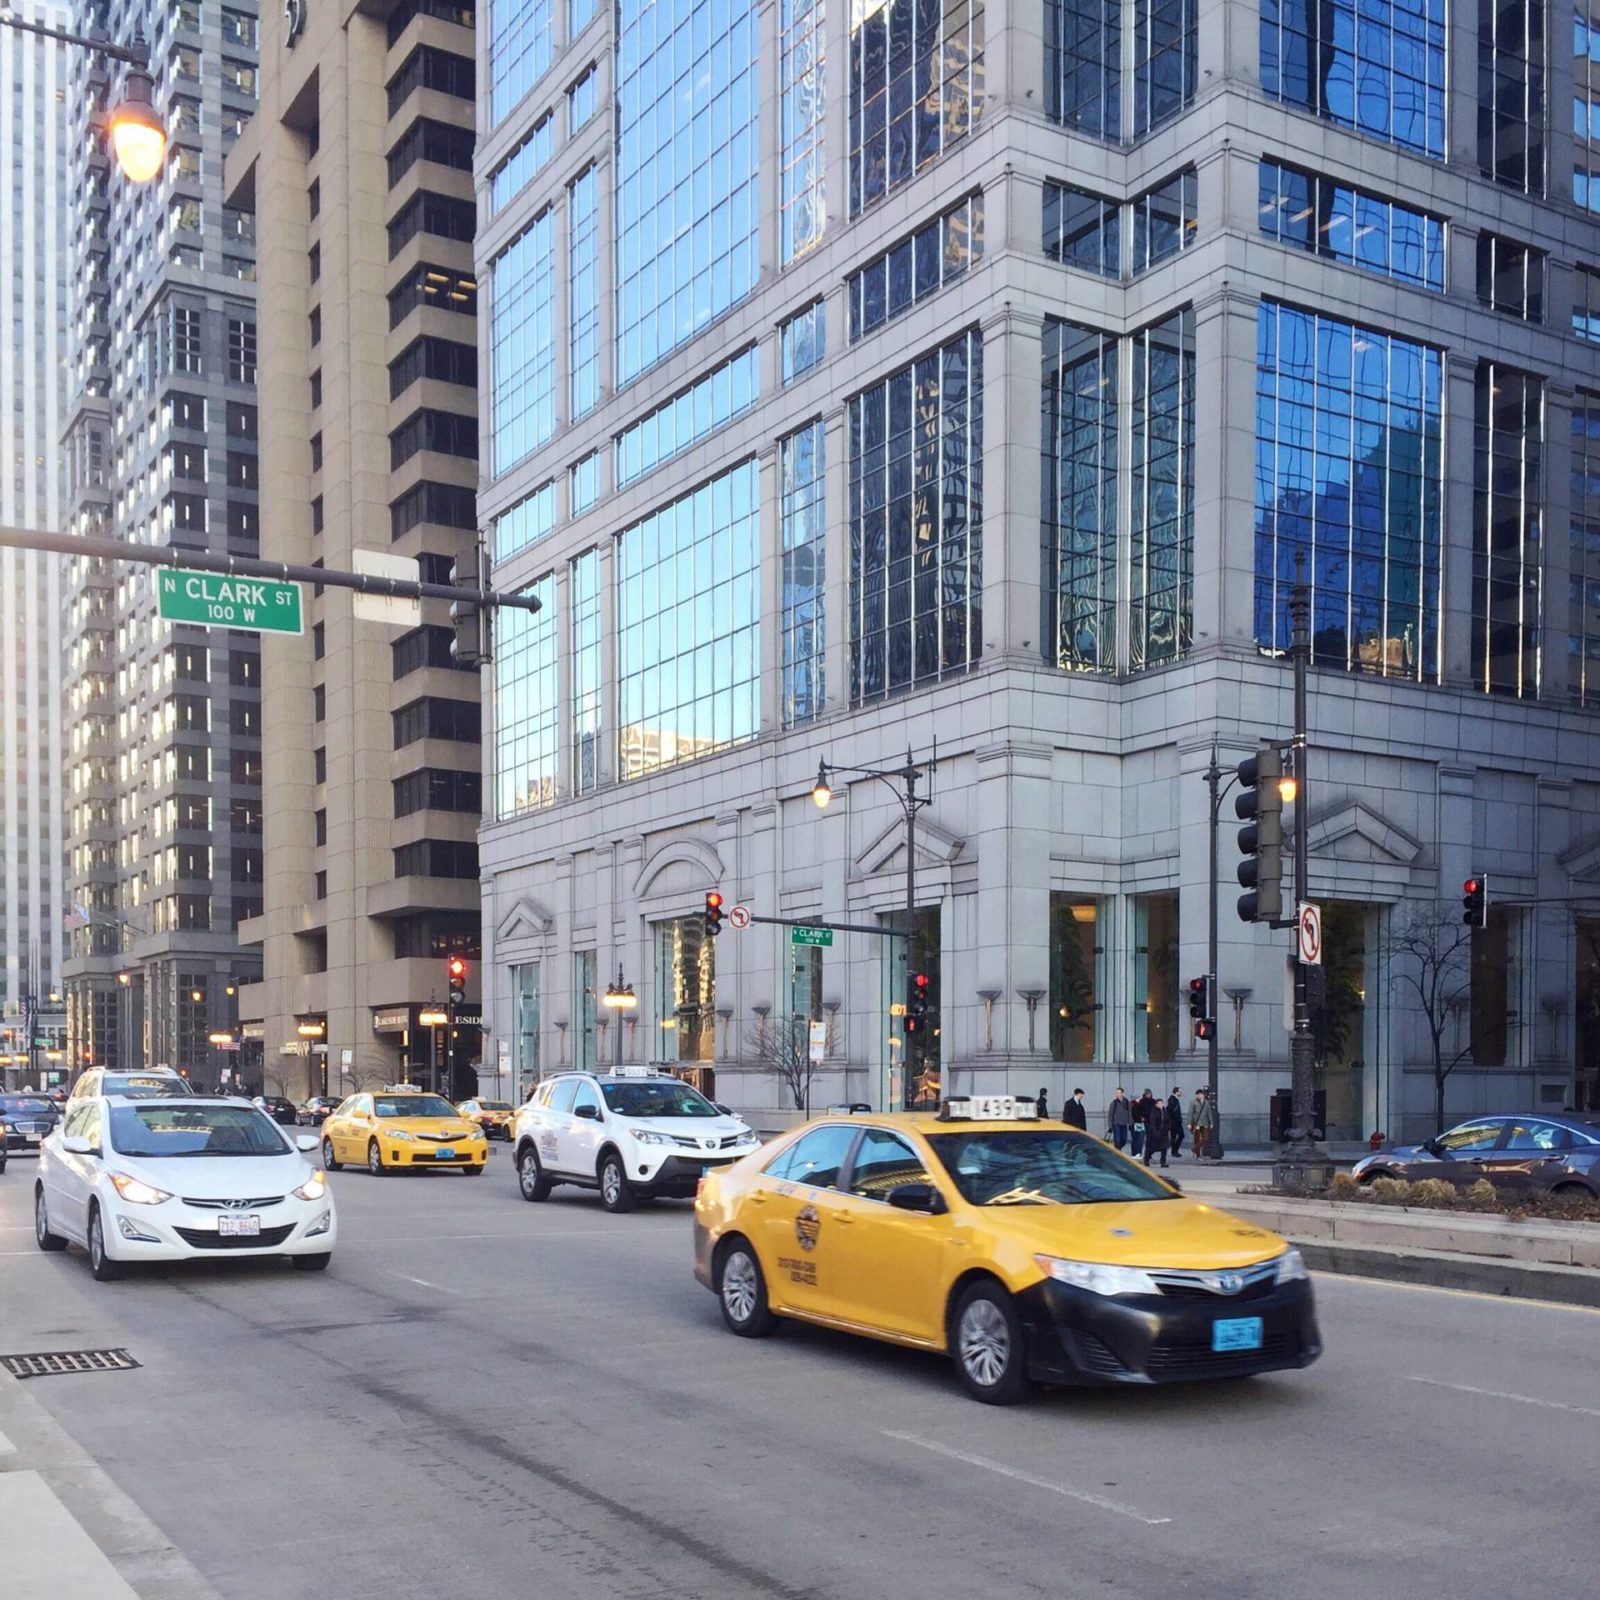 Downtown Chicago Loop via Gold-Hatted Lover